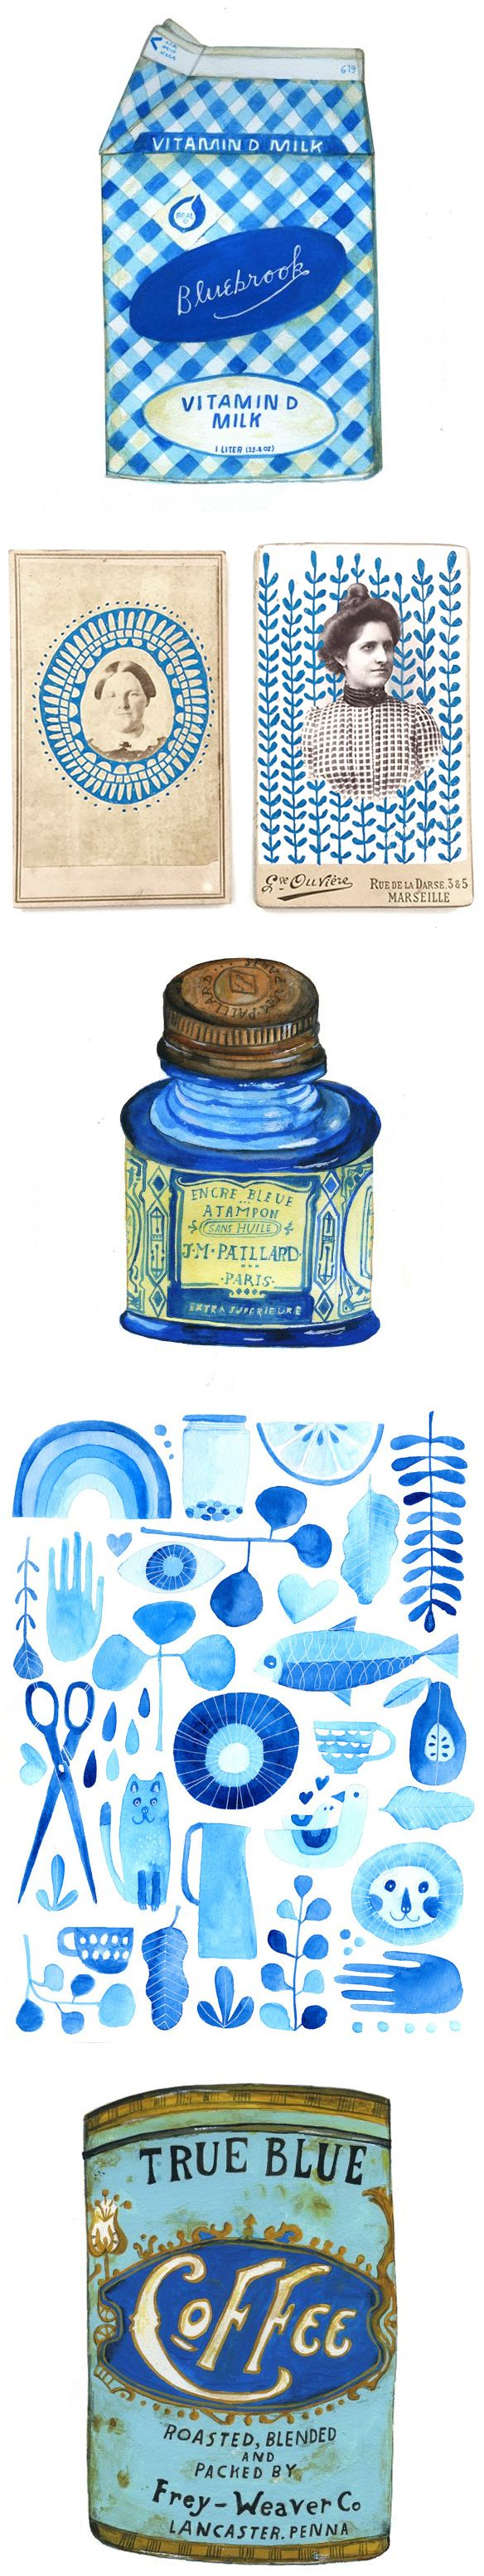 """""""experiments in blue"""" a weekly challenge for one year by lisa congdon"""